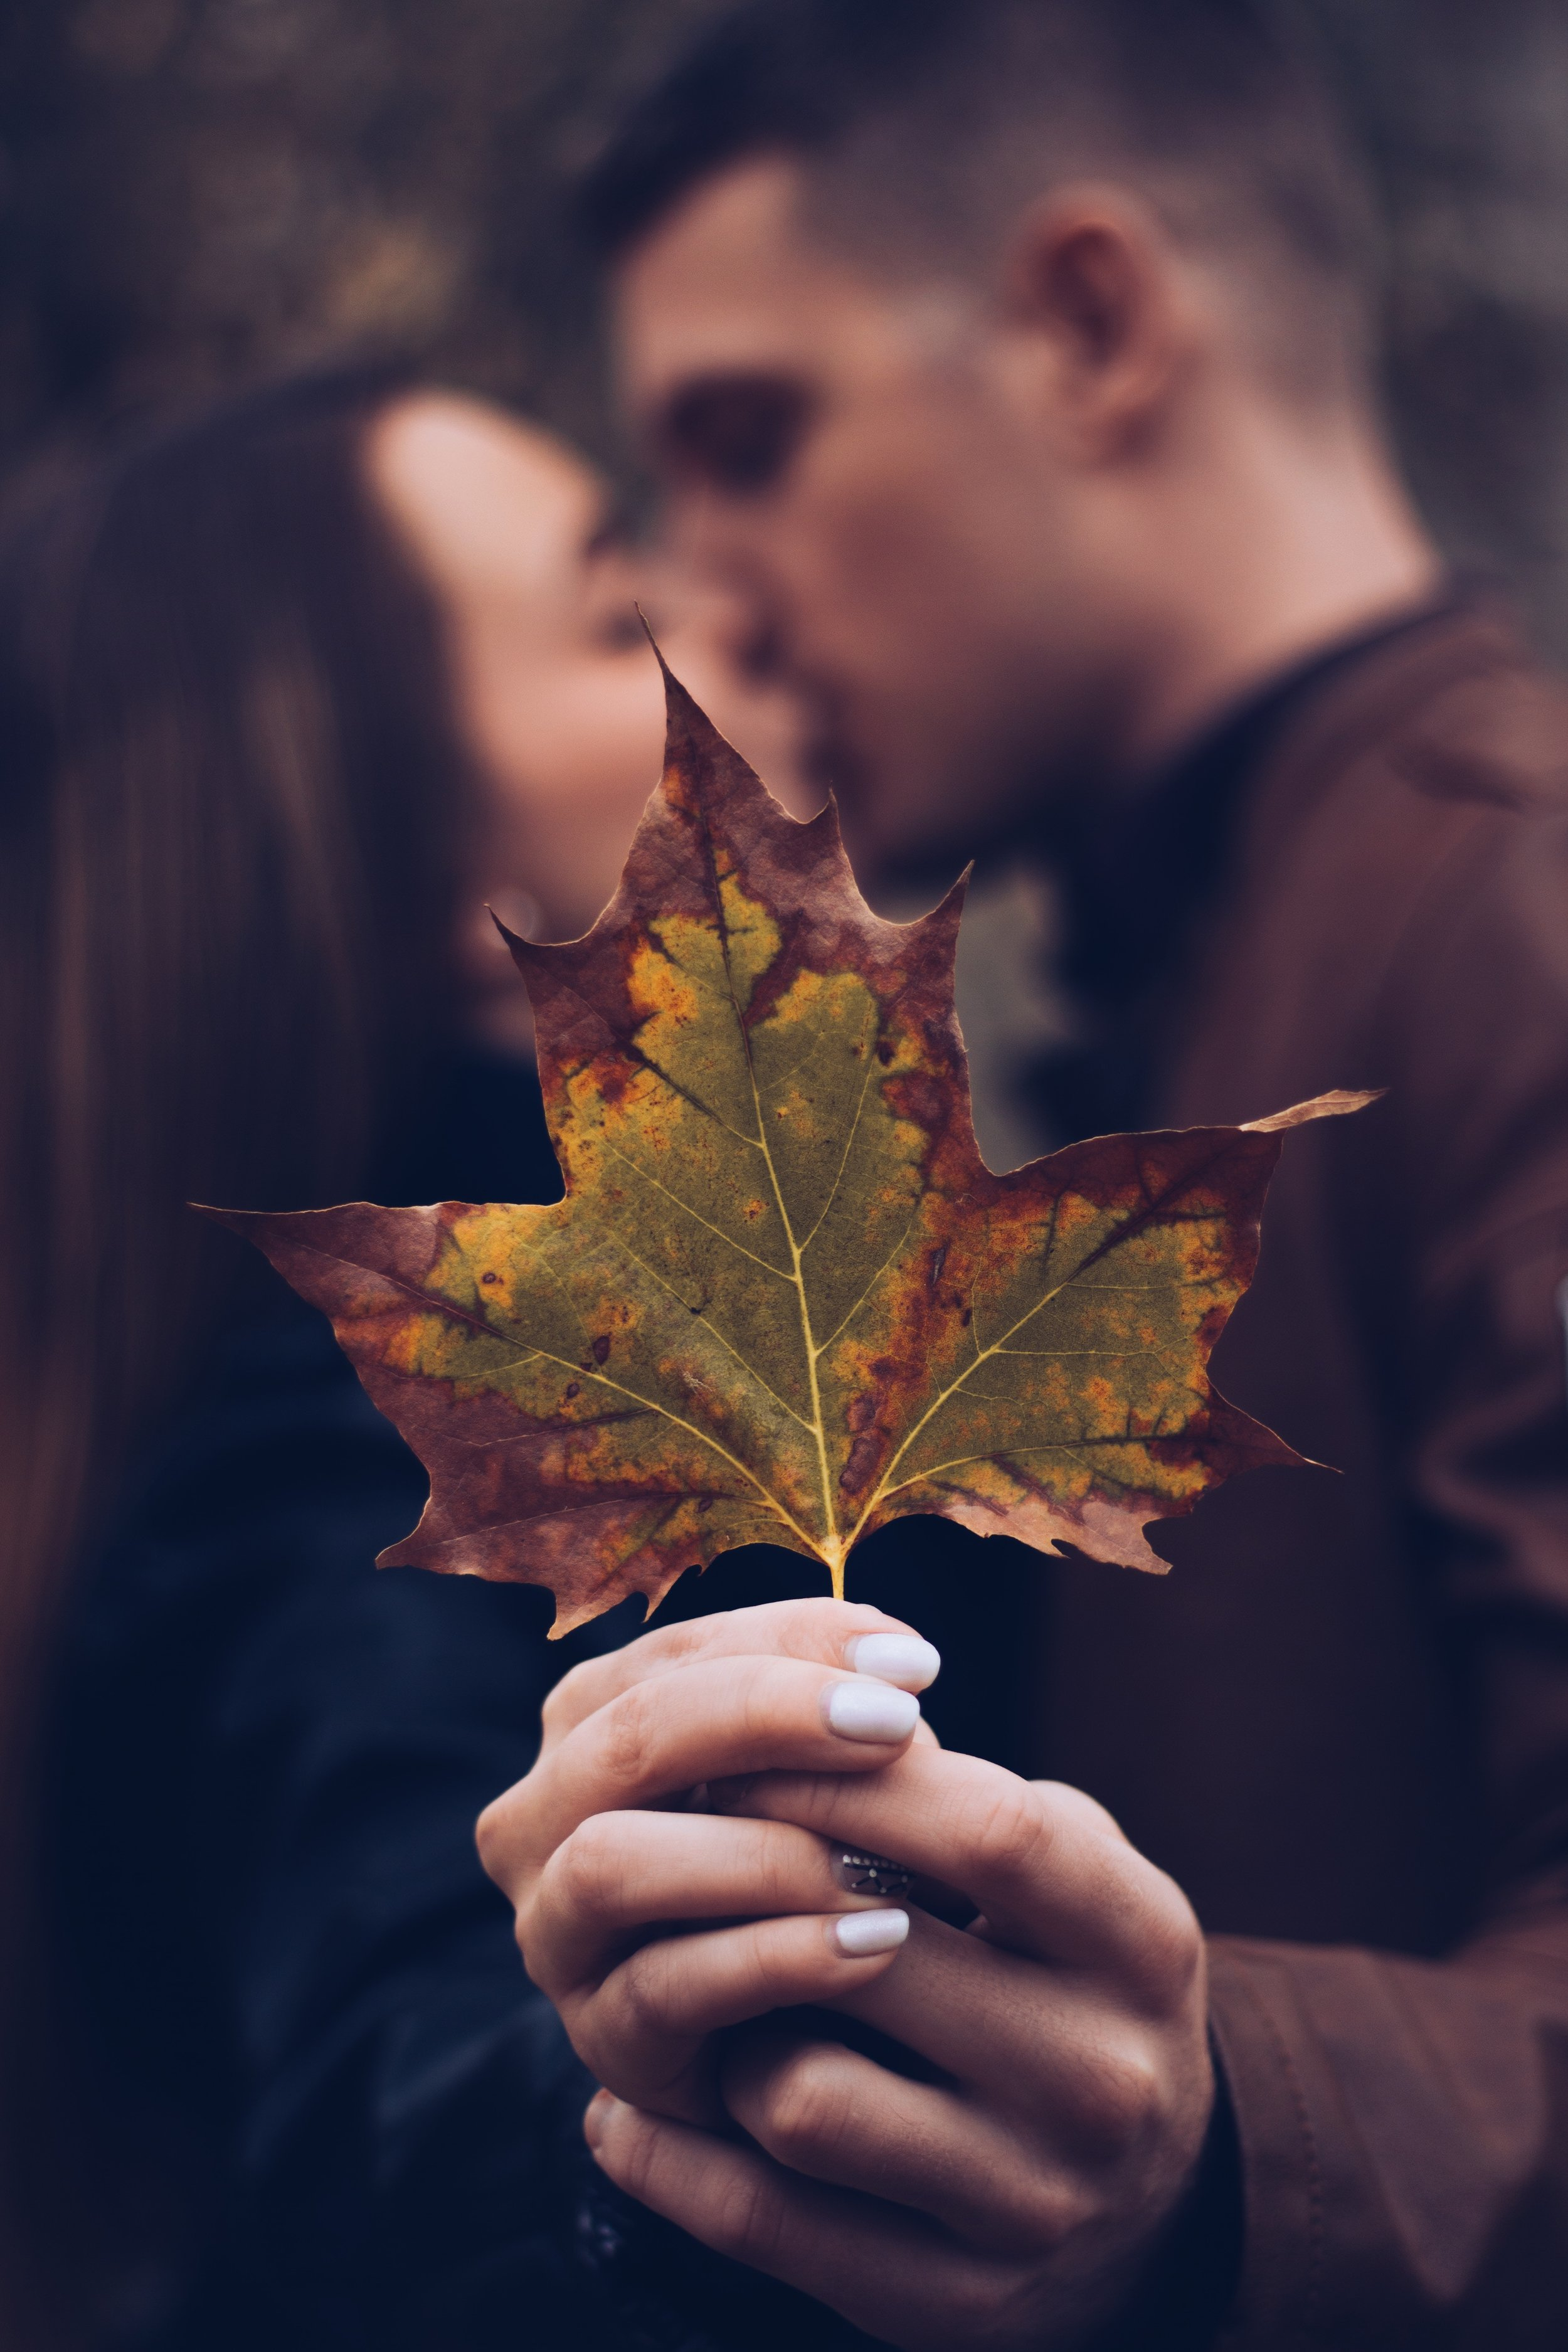 Dry spells in long term relationships are very common. Sex therapy & couples counseling at Tri-Valley Relationship Therapy can help you and your partner reconnect after a dry spell.